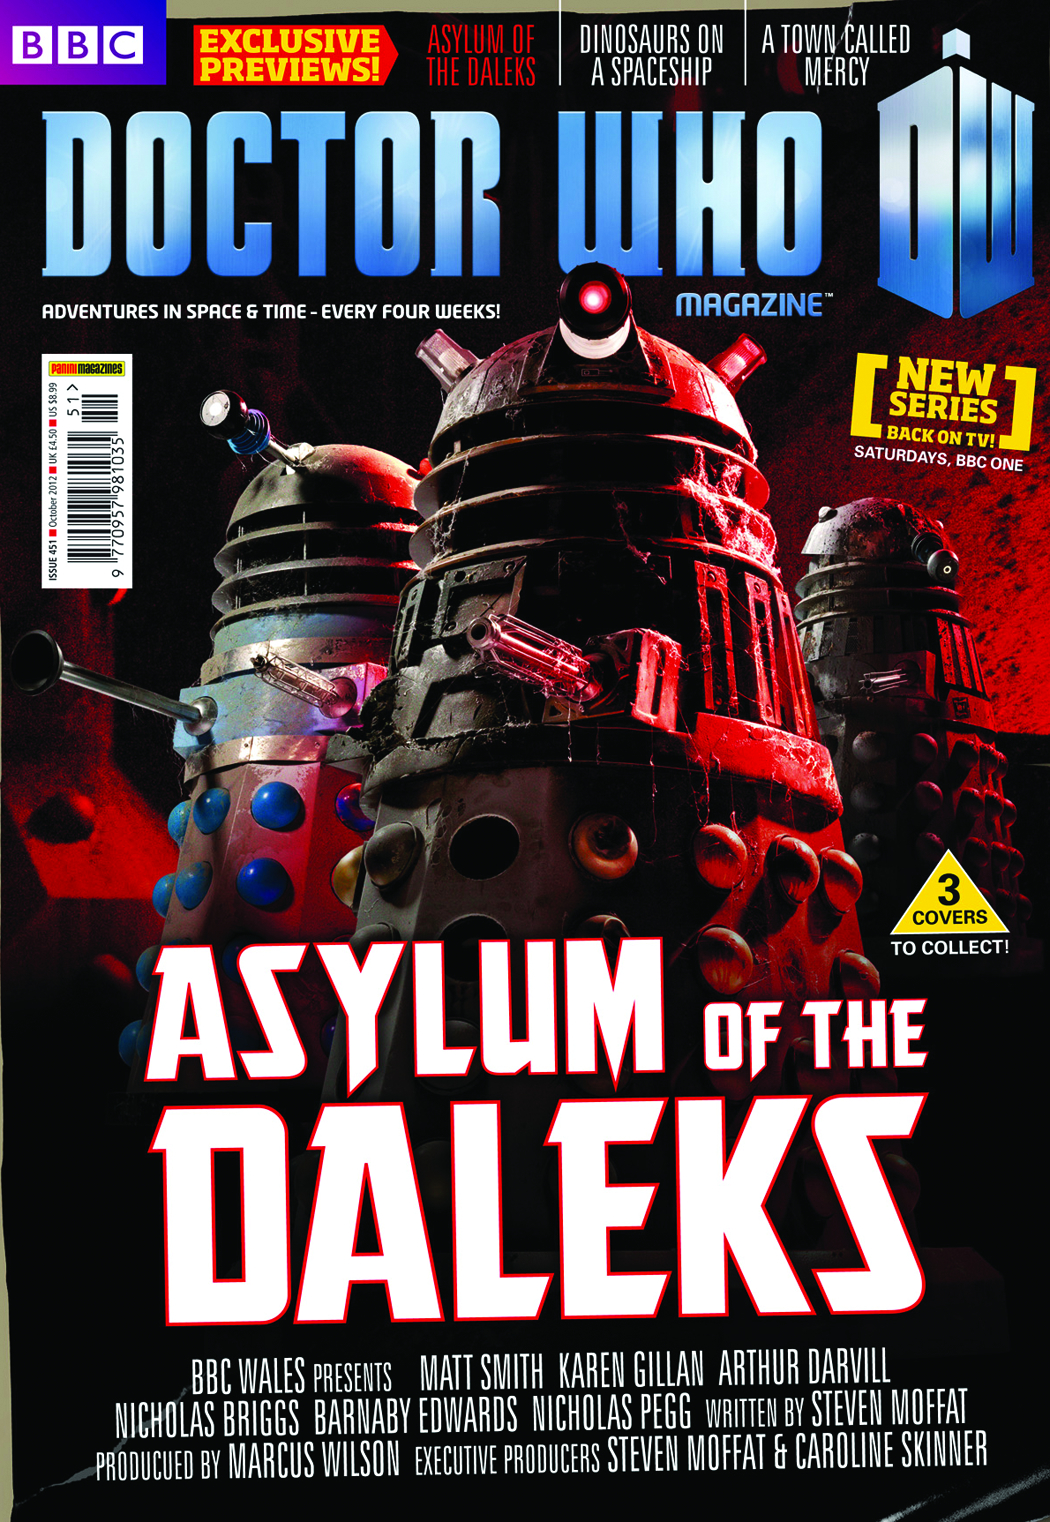 DOCTOR WHO MAGAZINE #456